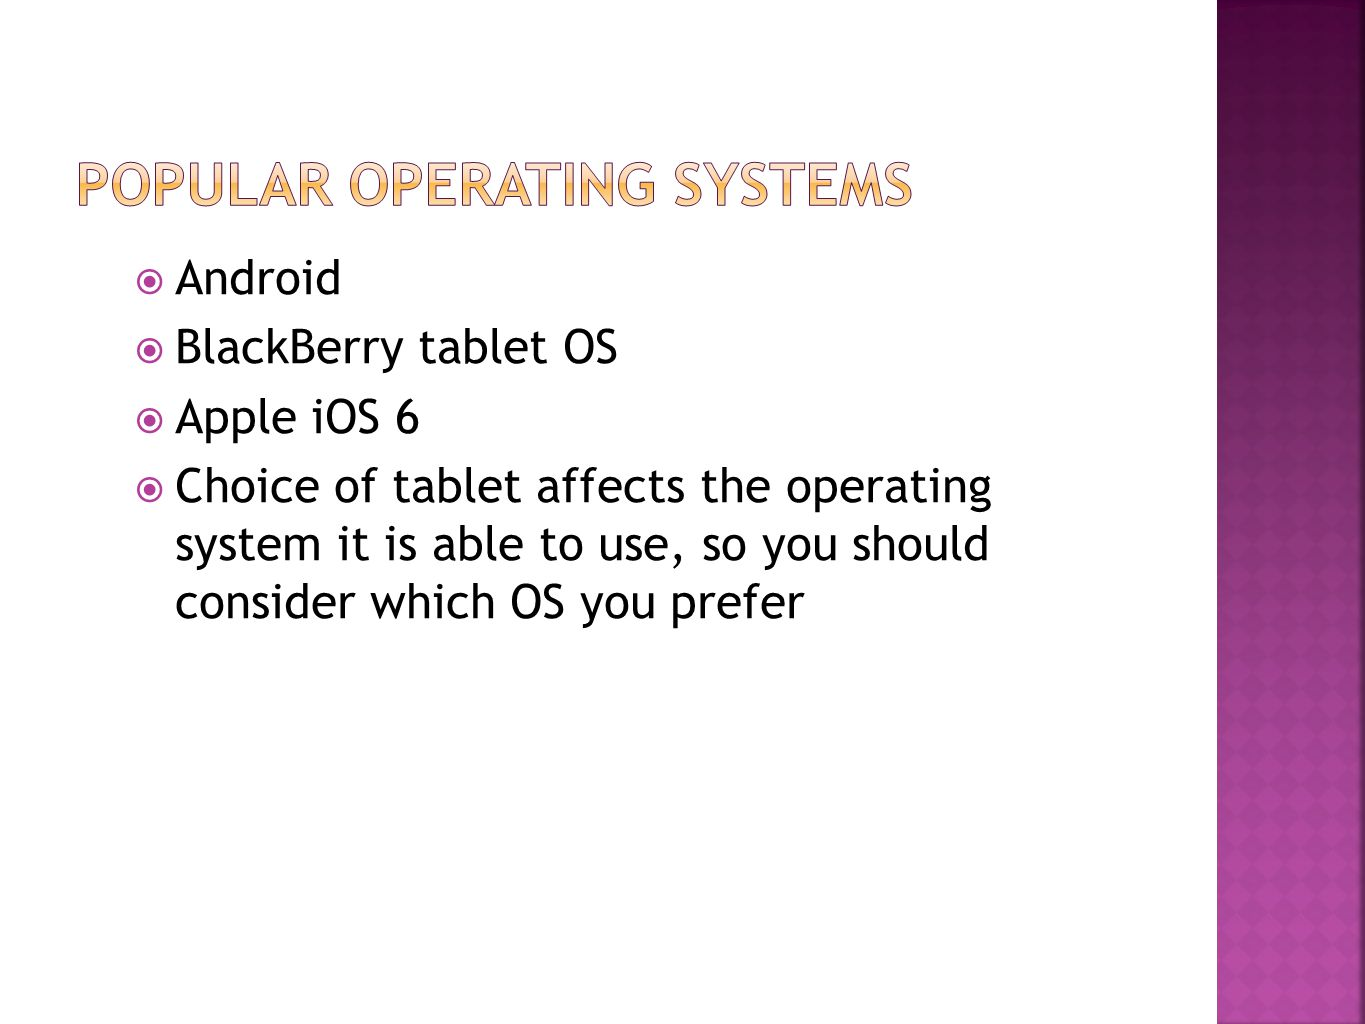  Android  BlackBerry tablet OS  Apple iOS 6  Choice of tablet affects the operating system it is able to use, so you should consider which OS you prefer